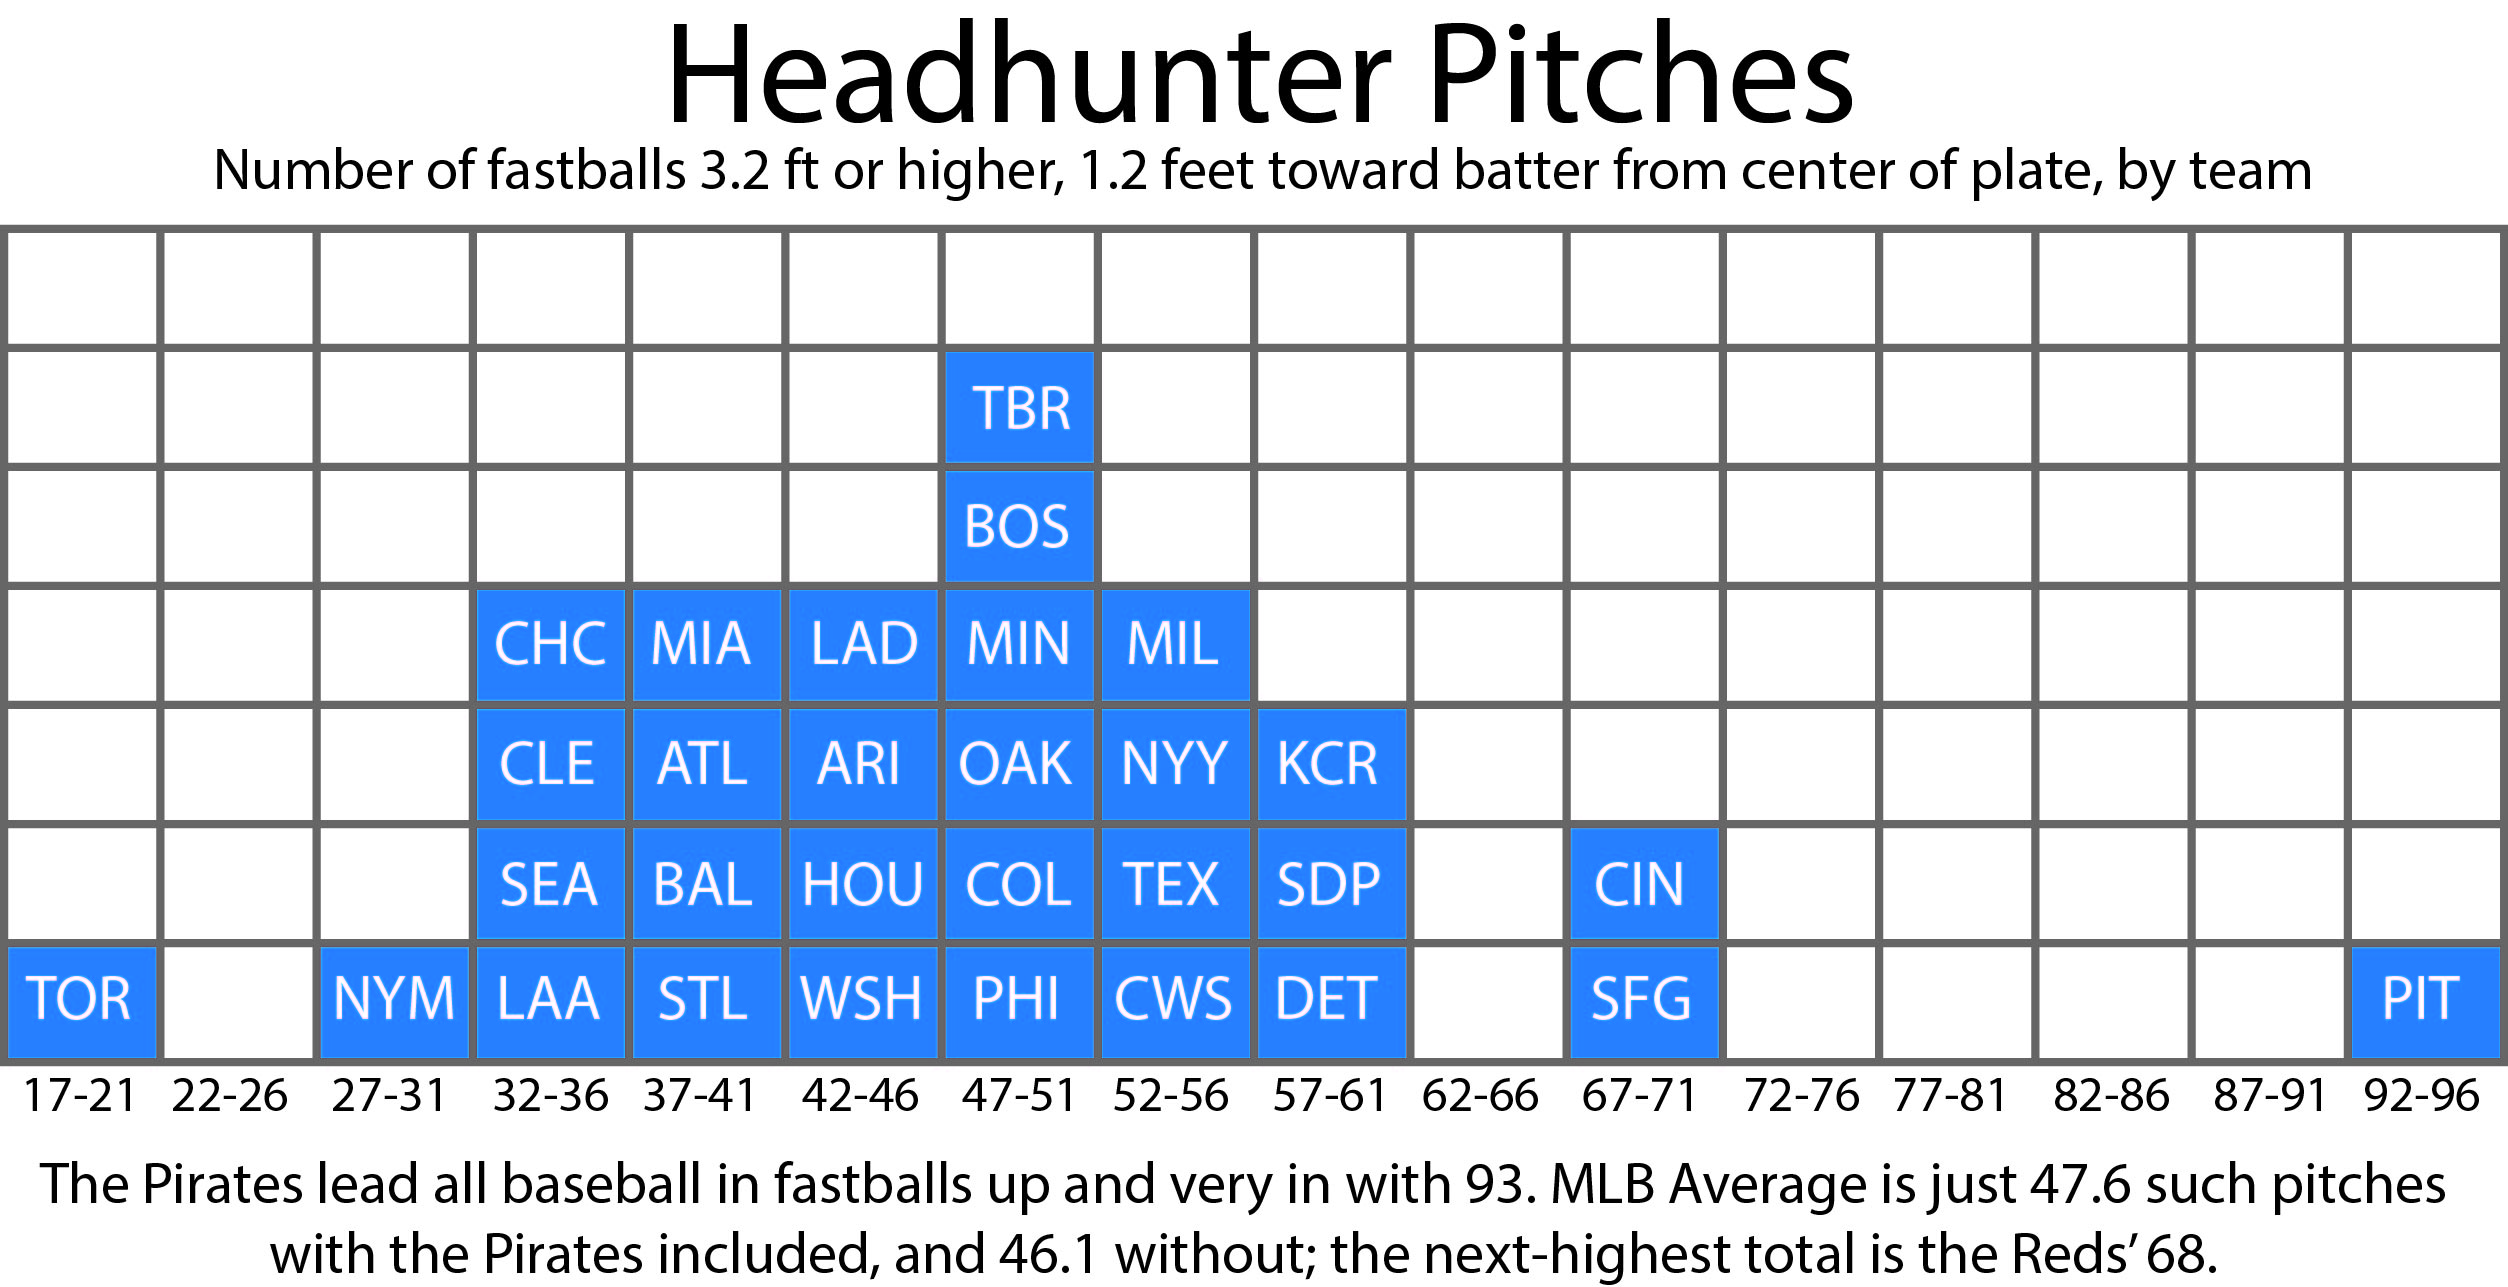 Headhunter Pitches by team with caption